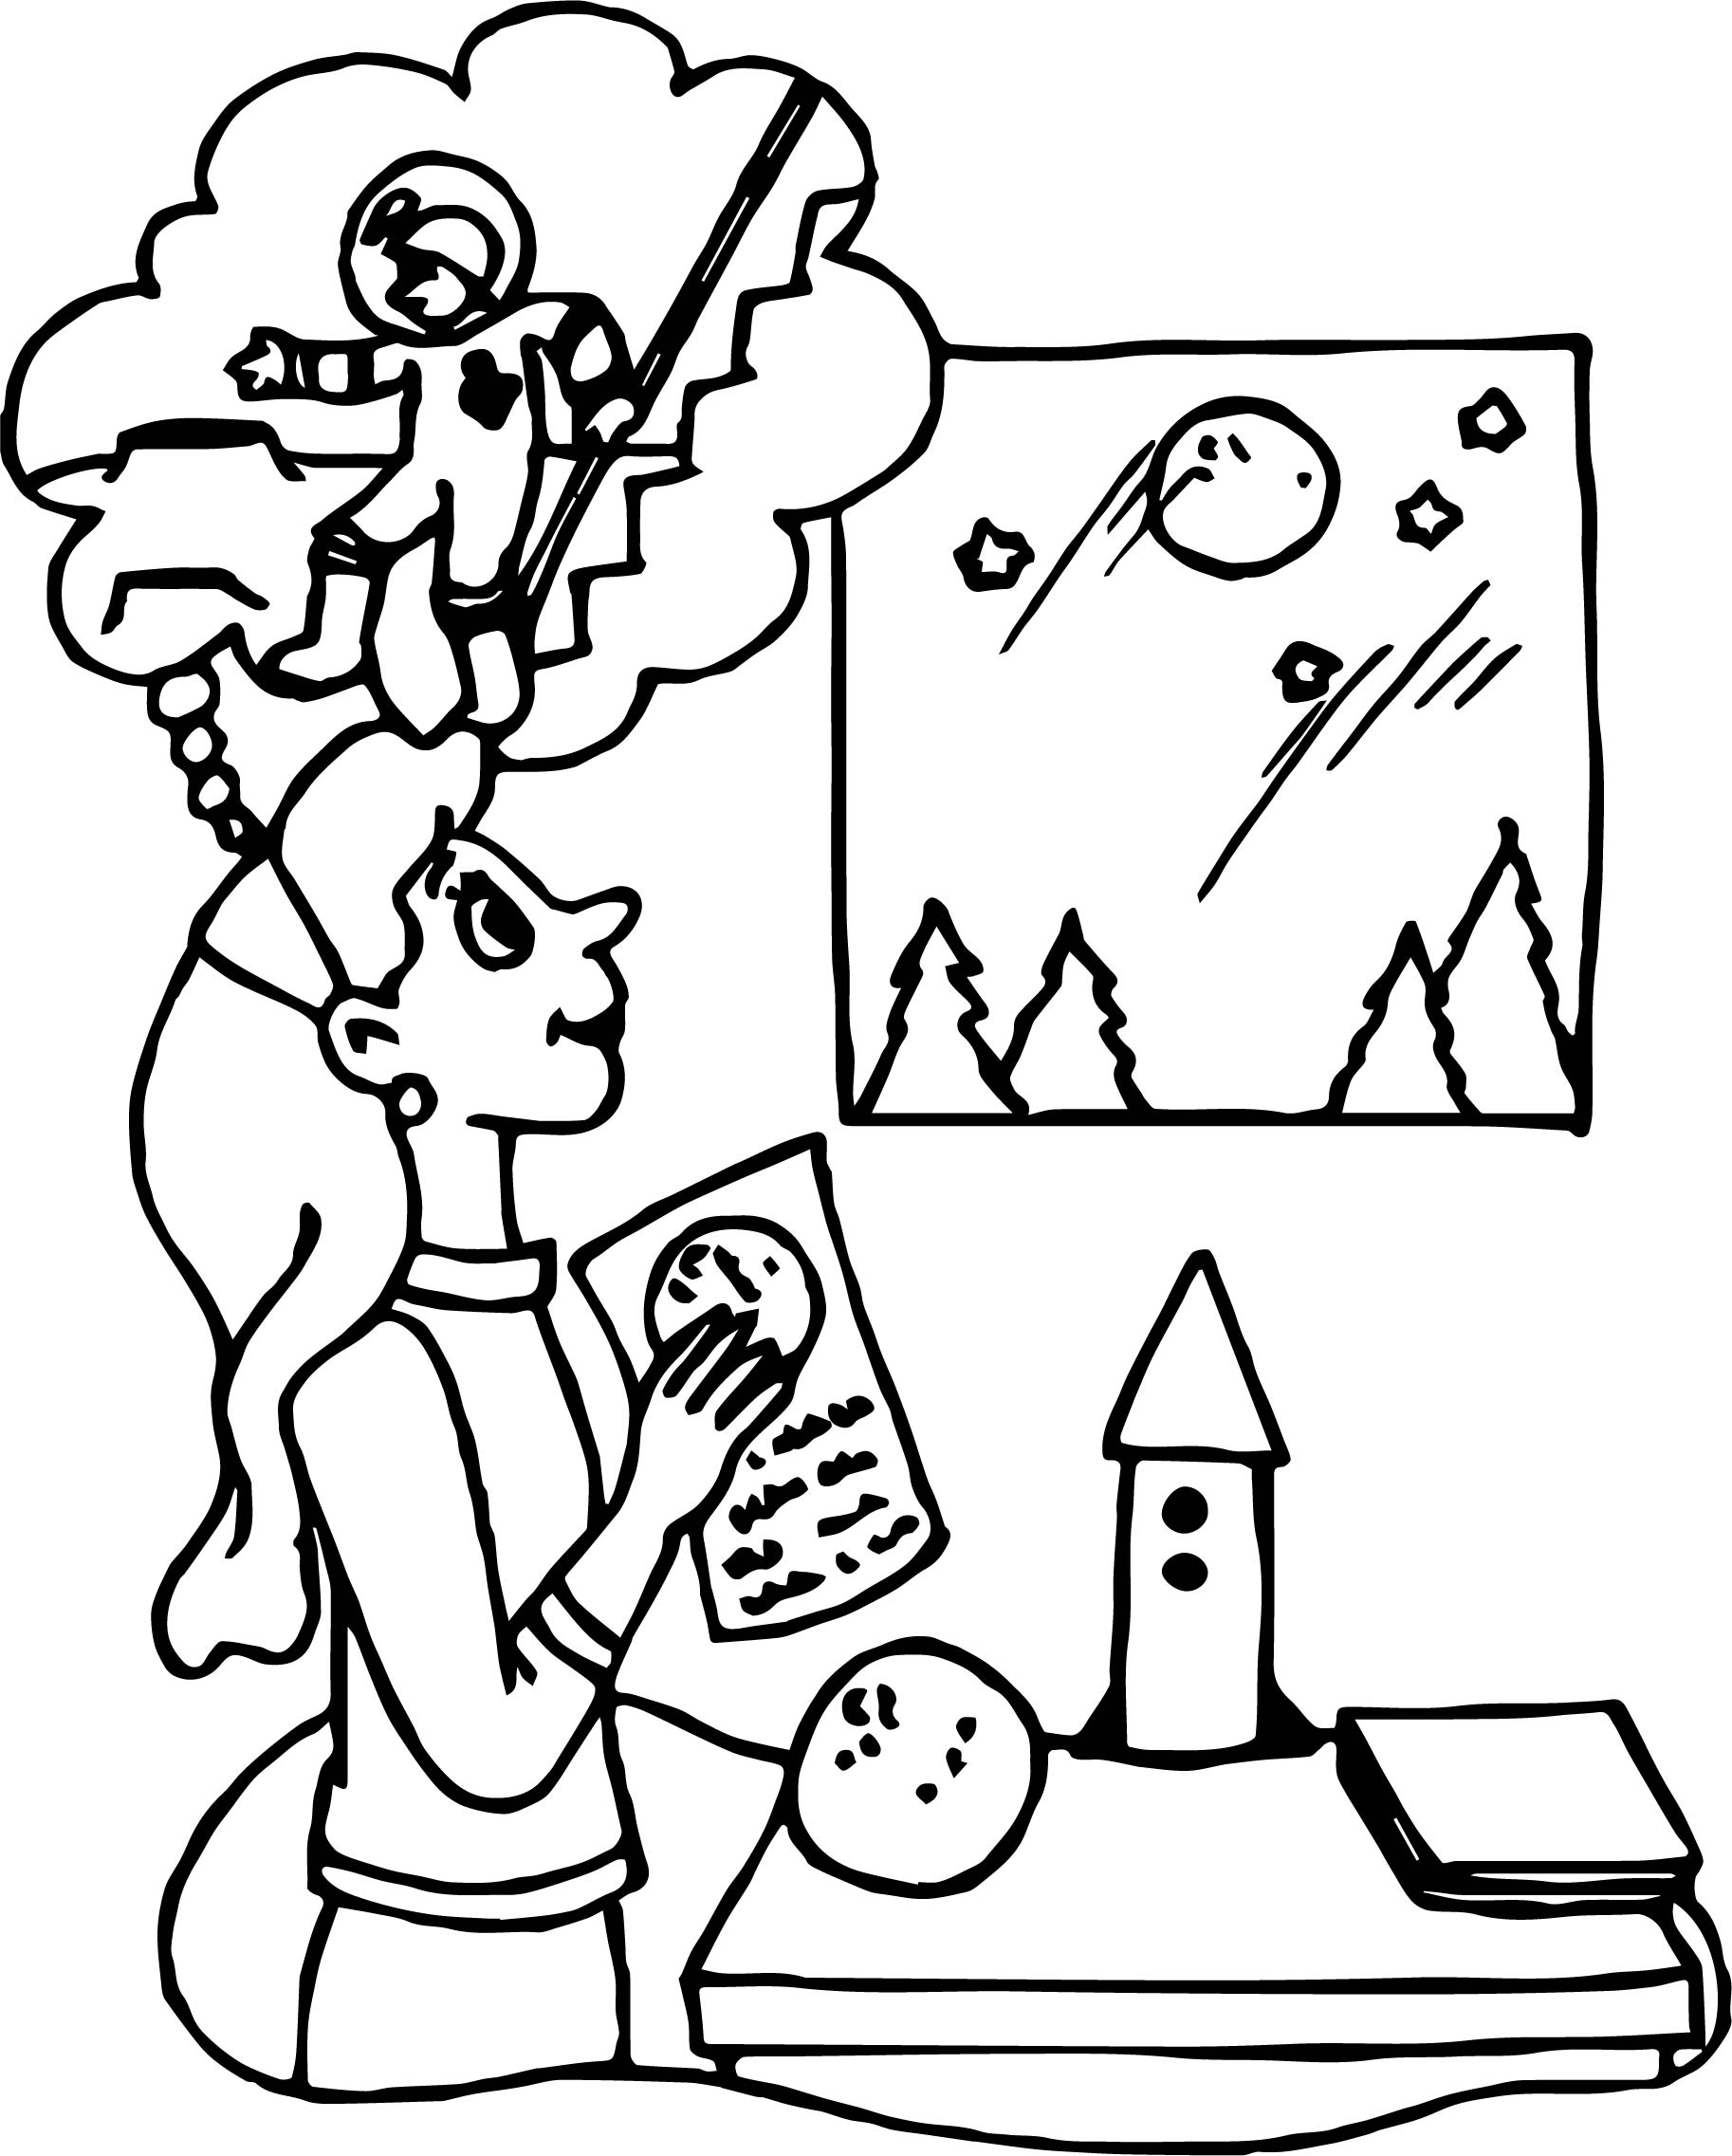 Astronaut Girl Friend Coloring Page